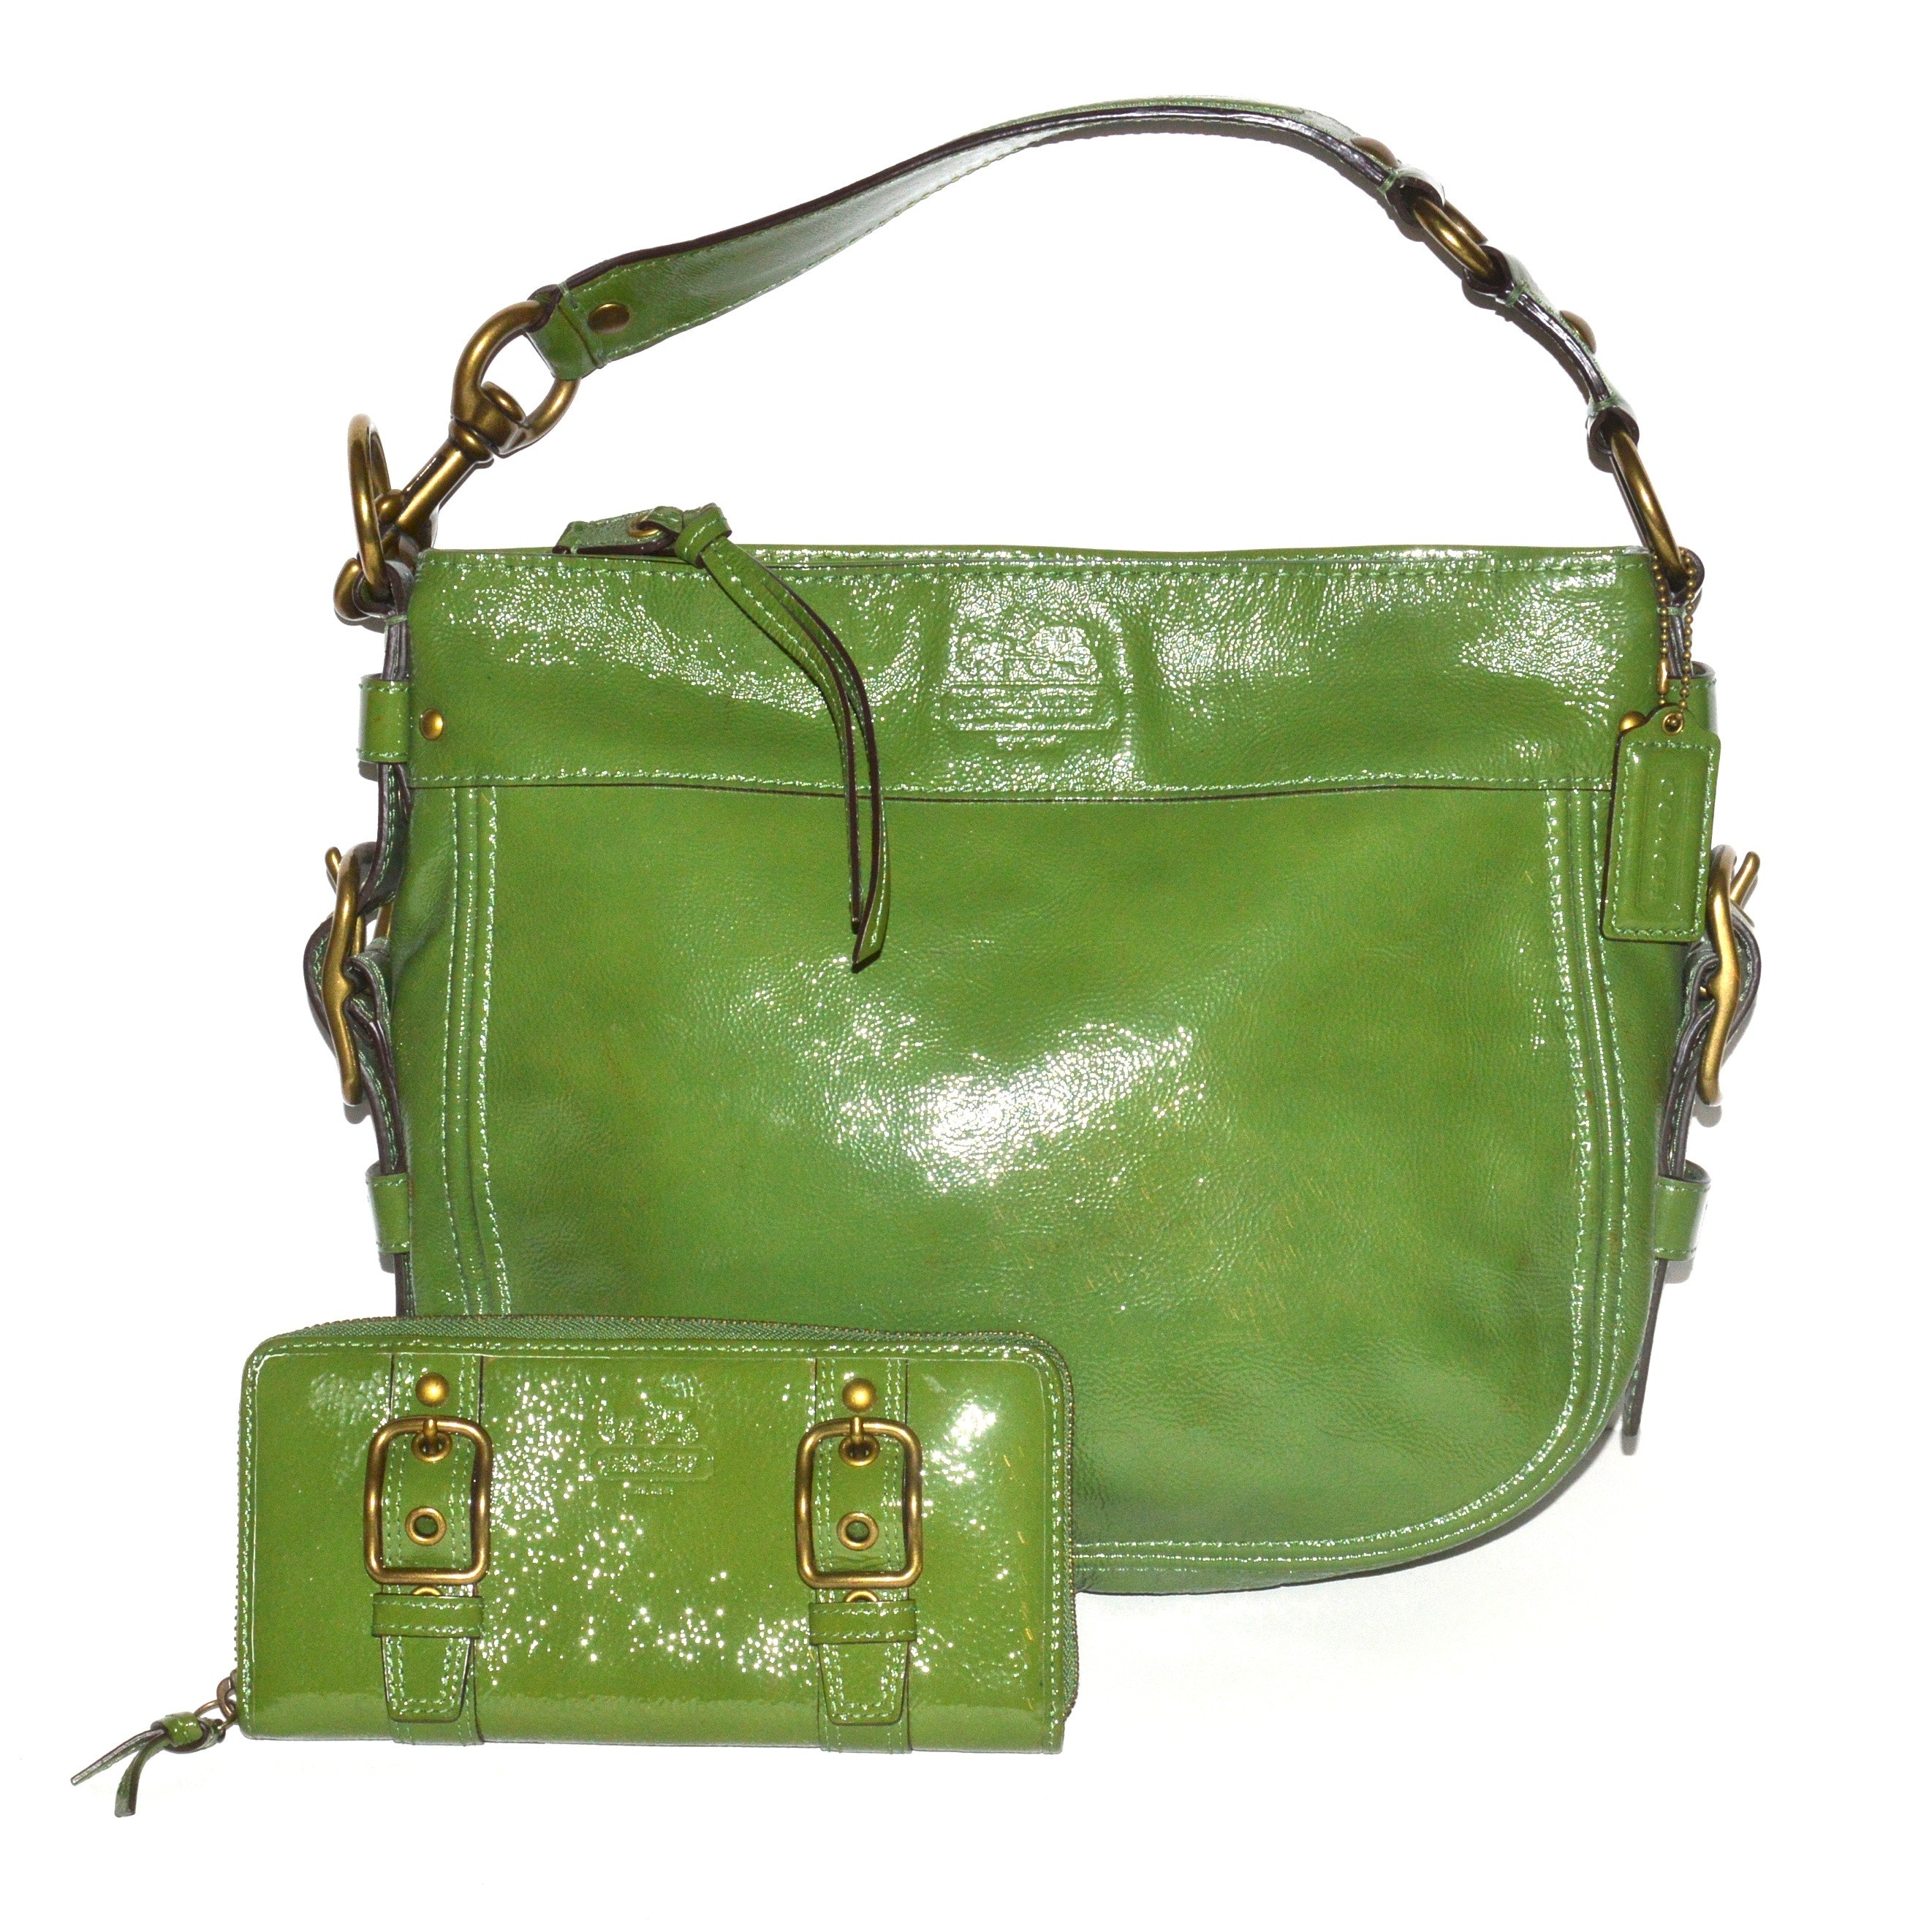 Coach Handbag and Wallet in Lime Green Patent Leather